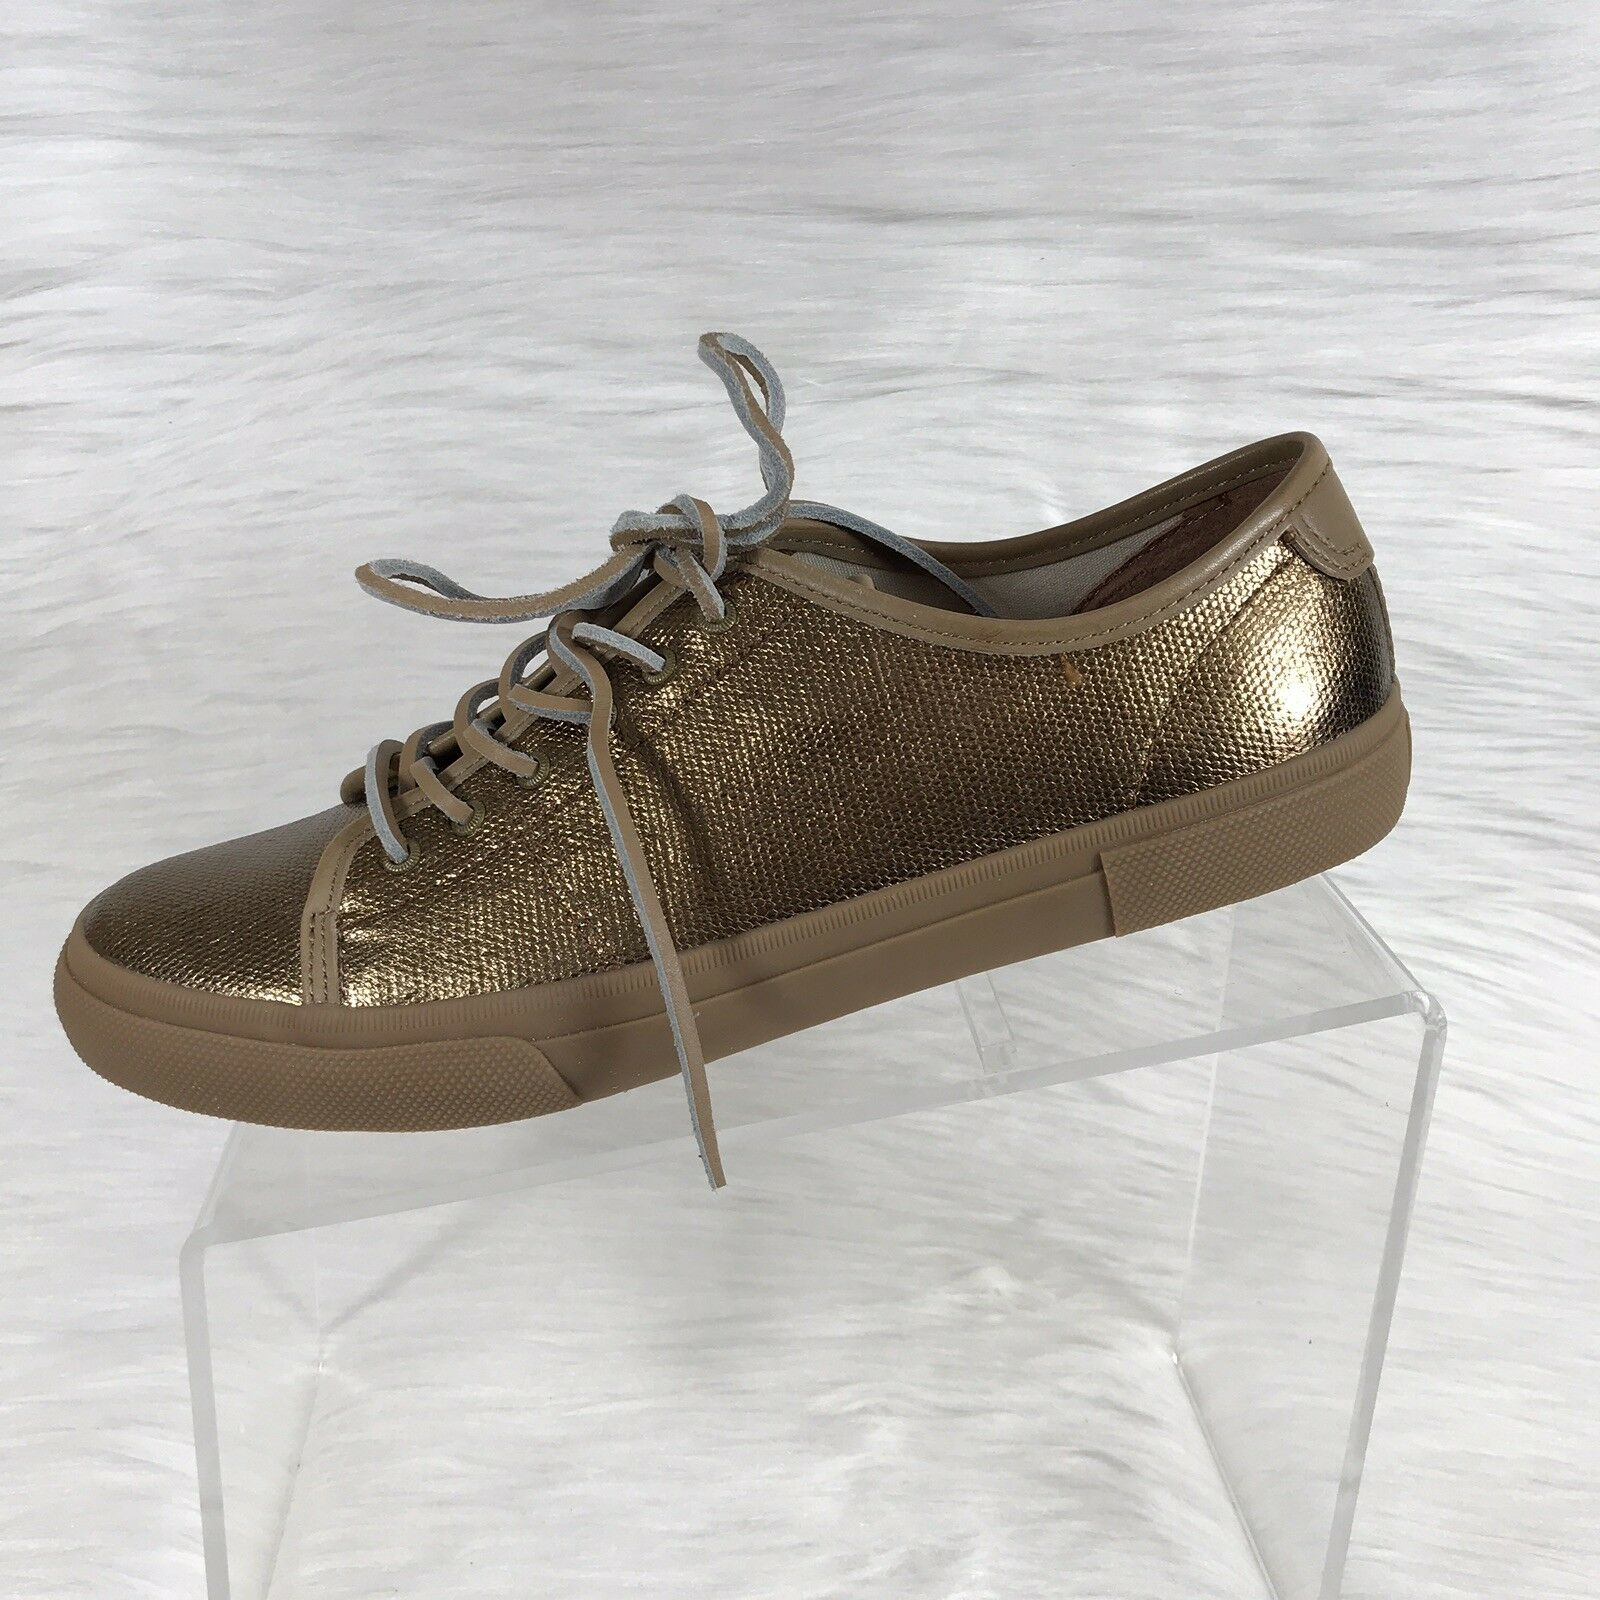 Frye Women's Gia Fashion Sneakers Canvas Low Lace Bronze Size 10 M NIB